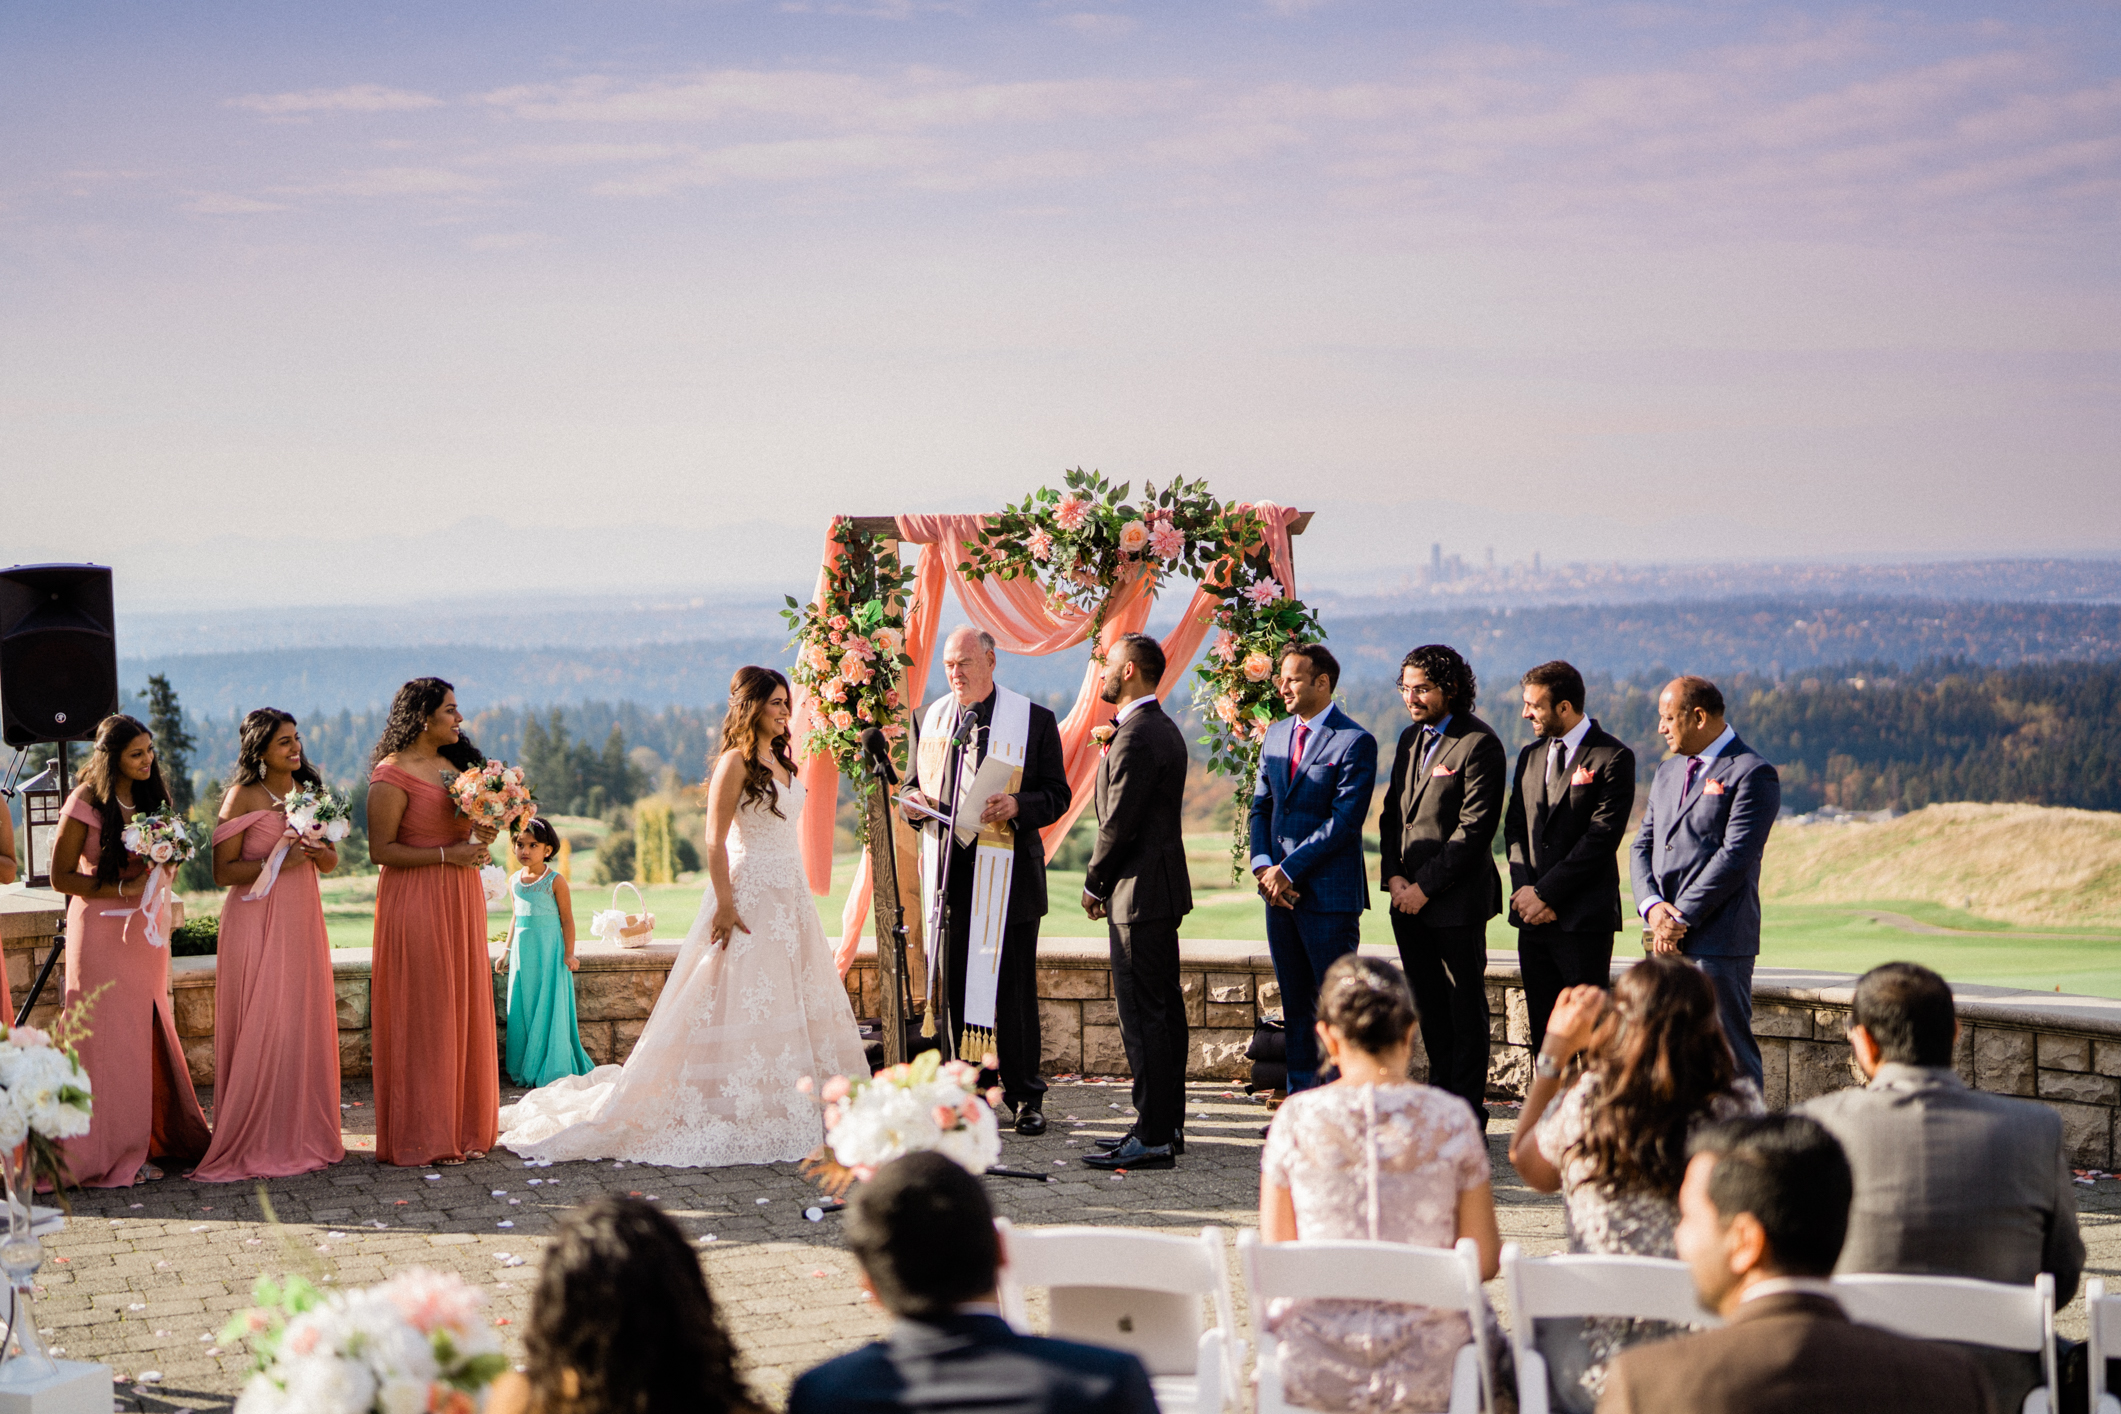 ceremony located outside the prestwick terrace at Newcastle golf club